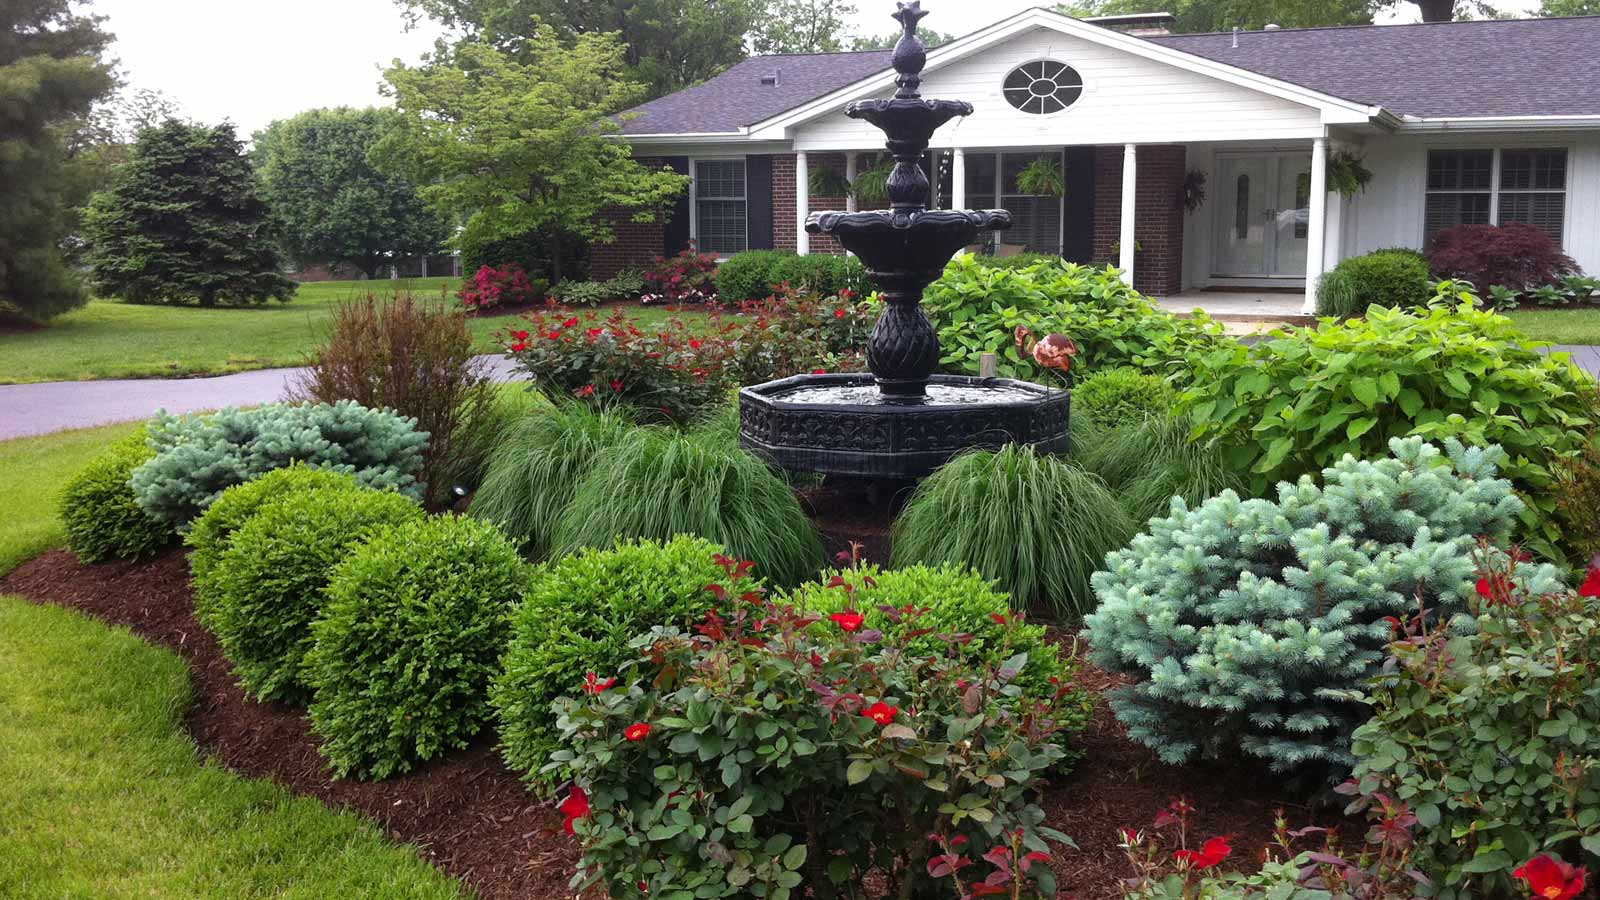 Residential Landscaping-Mesquite TX Landscape Designs & Outdoor Living Areas-We offer Landscape Design, Outdoor Patios & Pergolas, Outdoor Living Spaces, Stonescapes, Residential & Commercial Landscaping, Irrigation Installation & Repairs, Drainage Systems, Landscape Lighting, Outdoor Living Spaces, Tree Service, Lawn Service, and more.